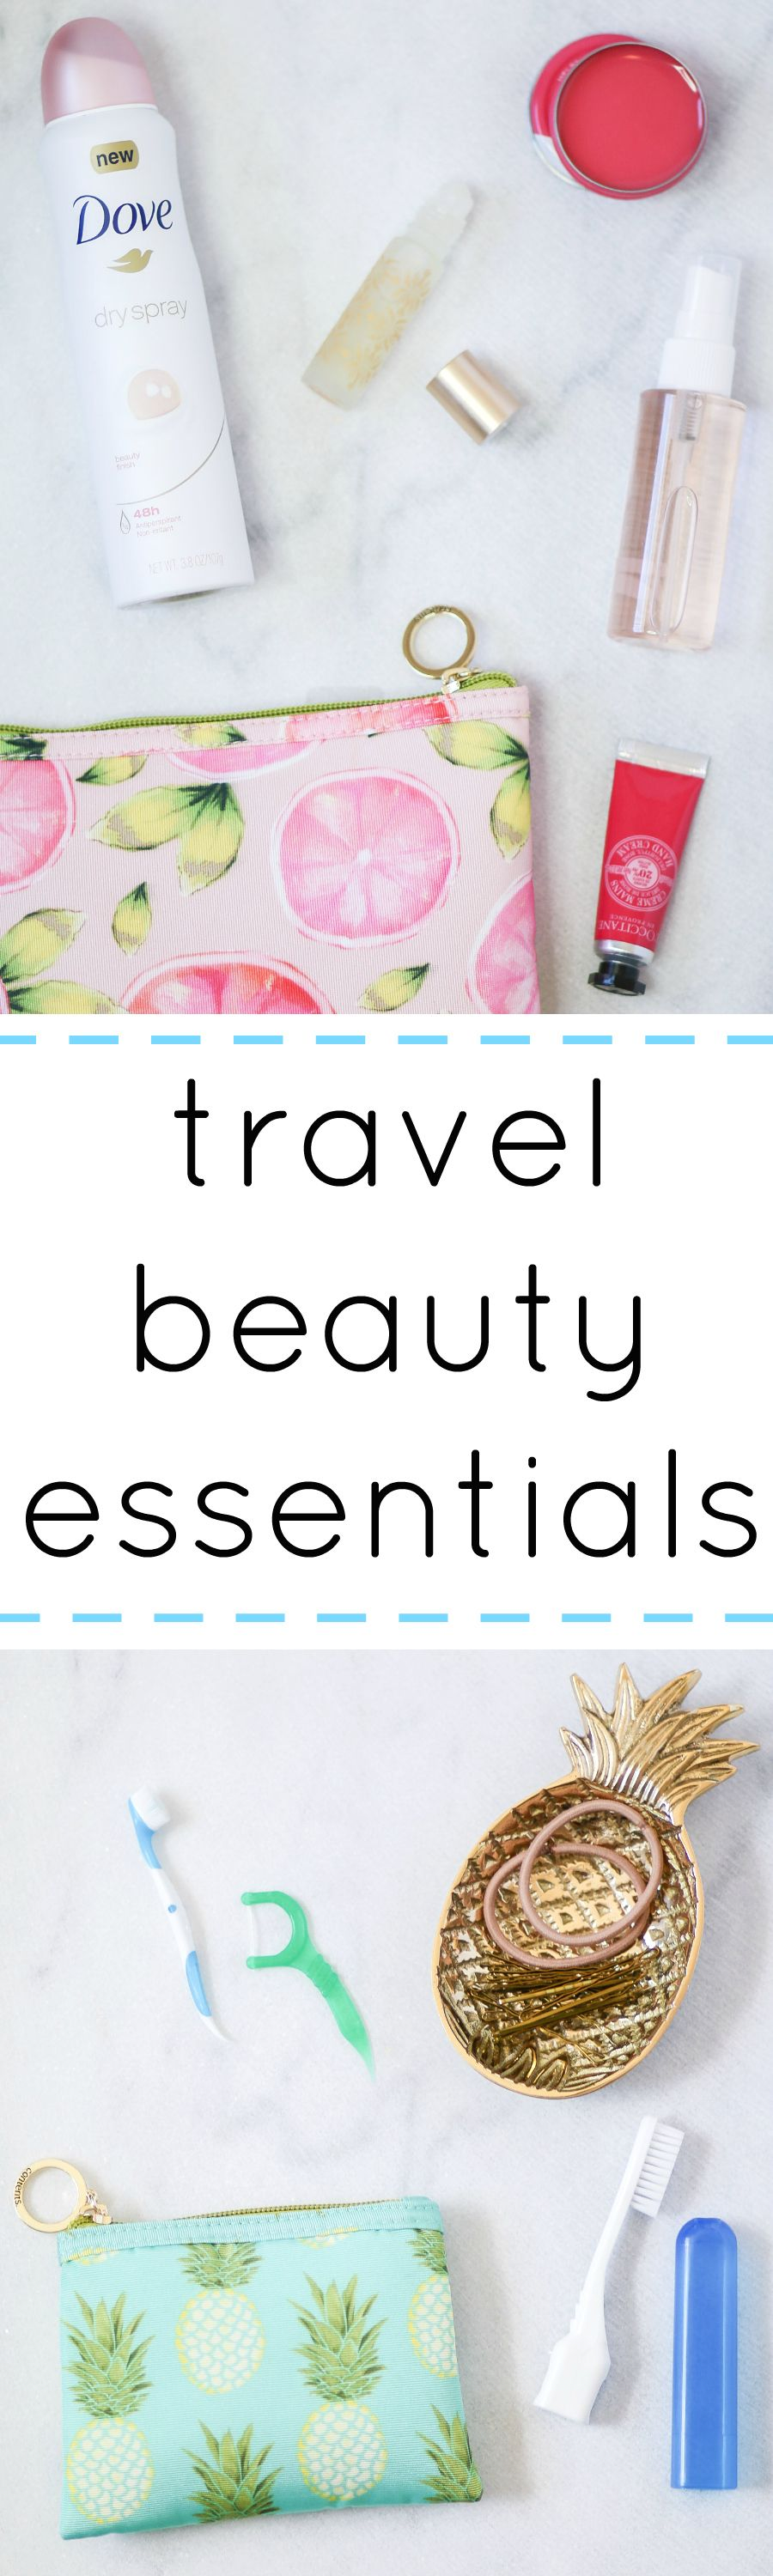 After a long flight, I look like a hot mess. Thankfully, there are a few fantastic travel beauty products that help me refresh my look in no time! Click through to see all of my travel beauty essentials including the @dove dry sprays! Thanks to Lunchbox for sponsoring this post! #beautyessentials